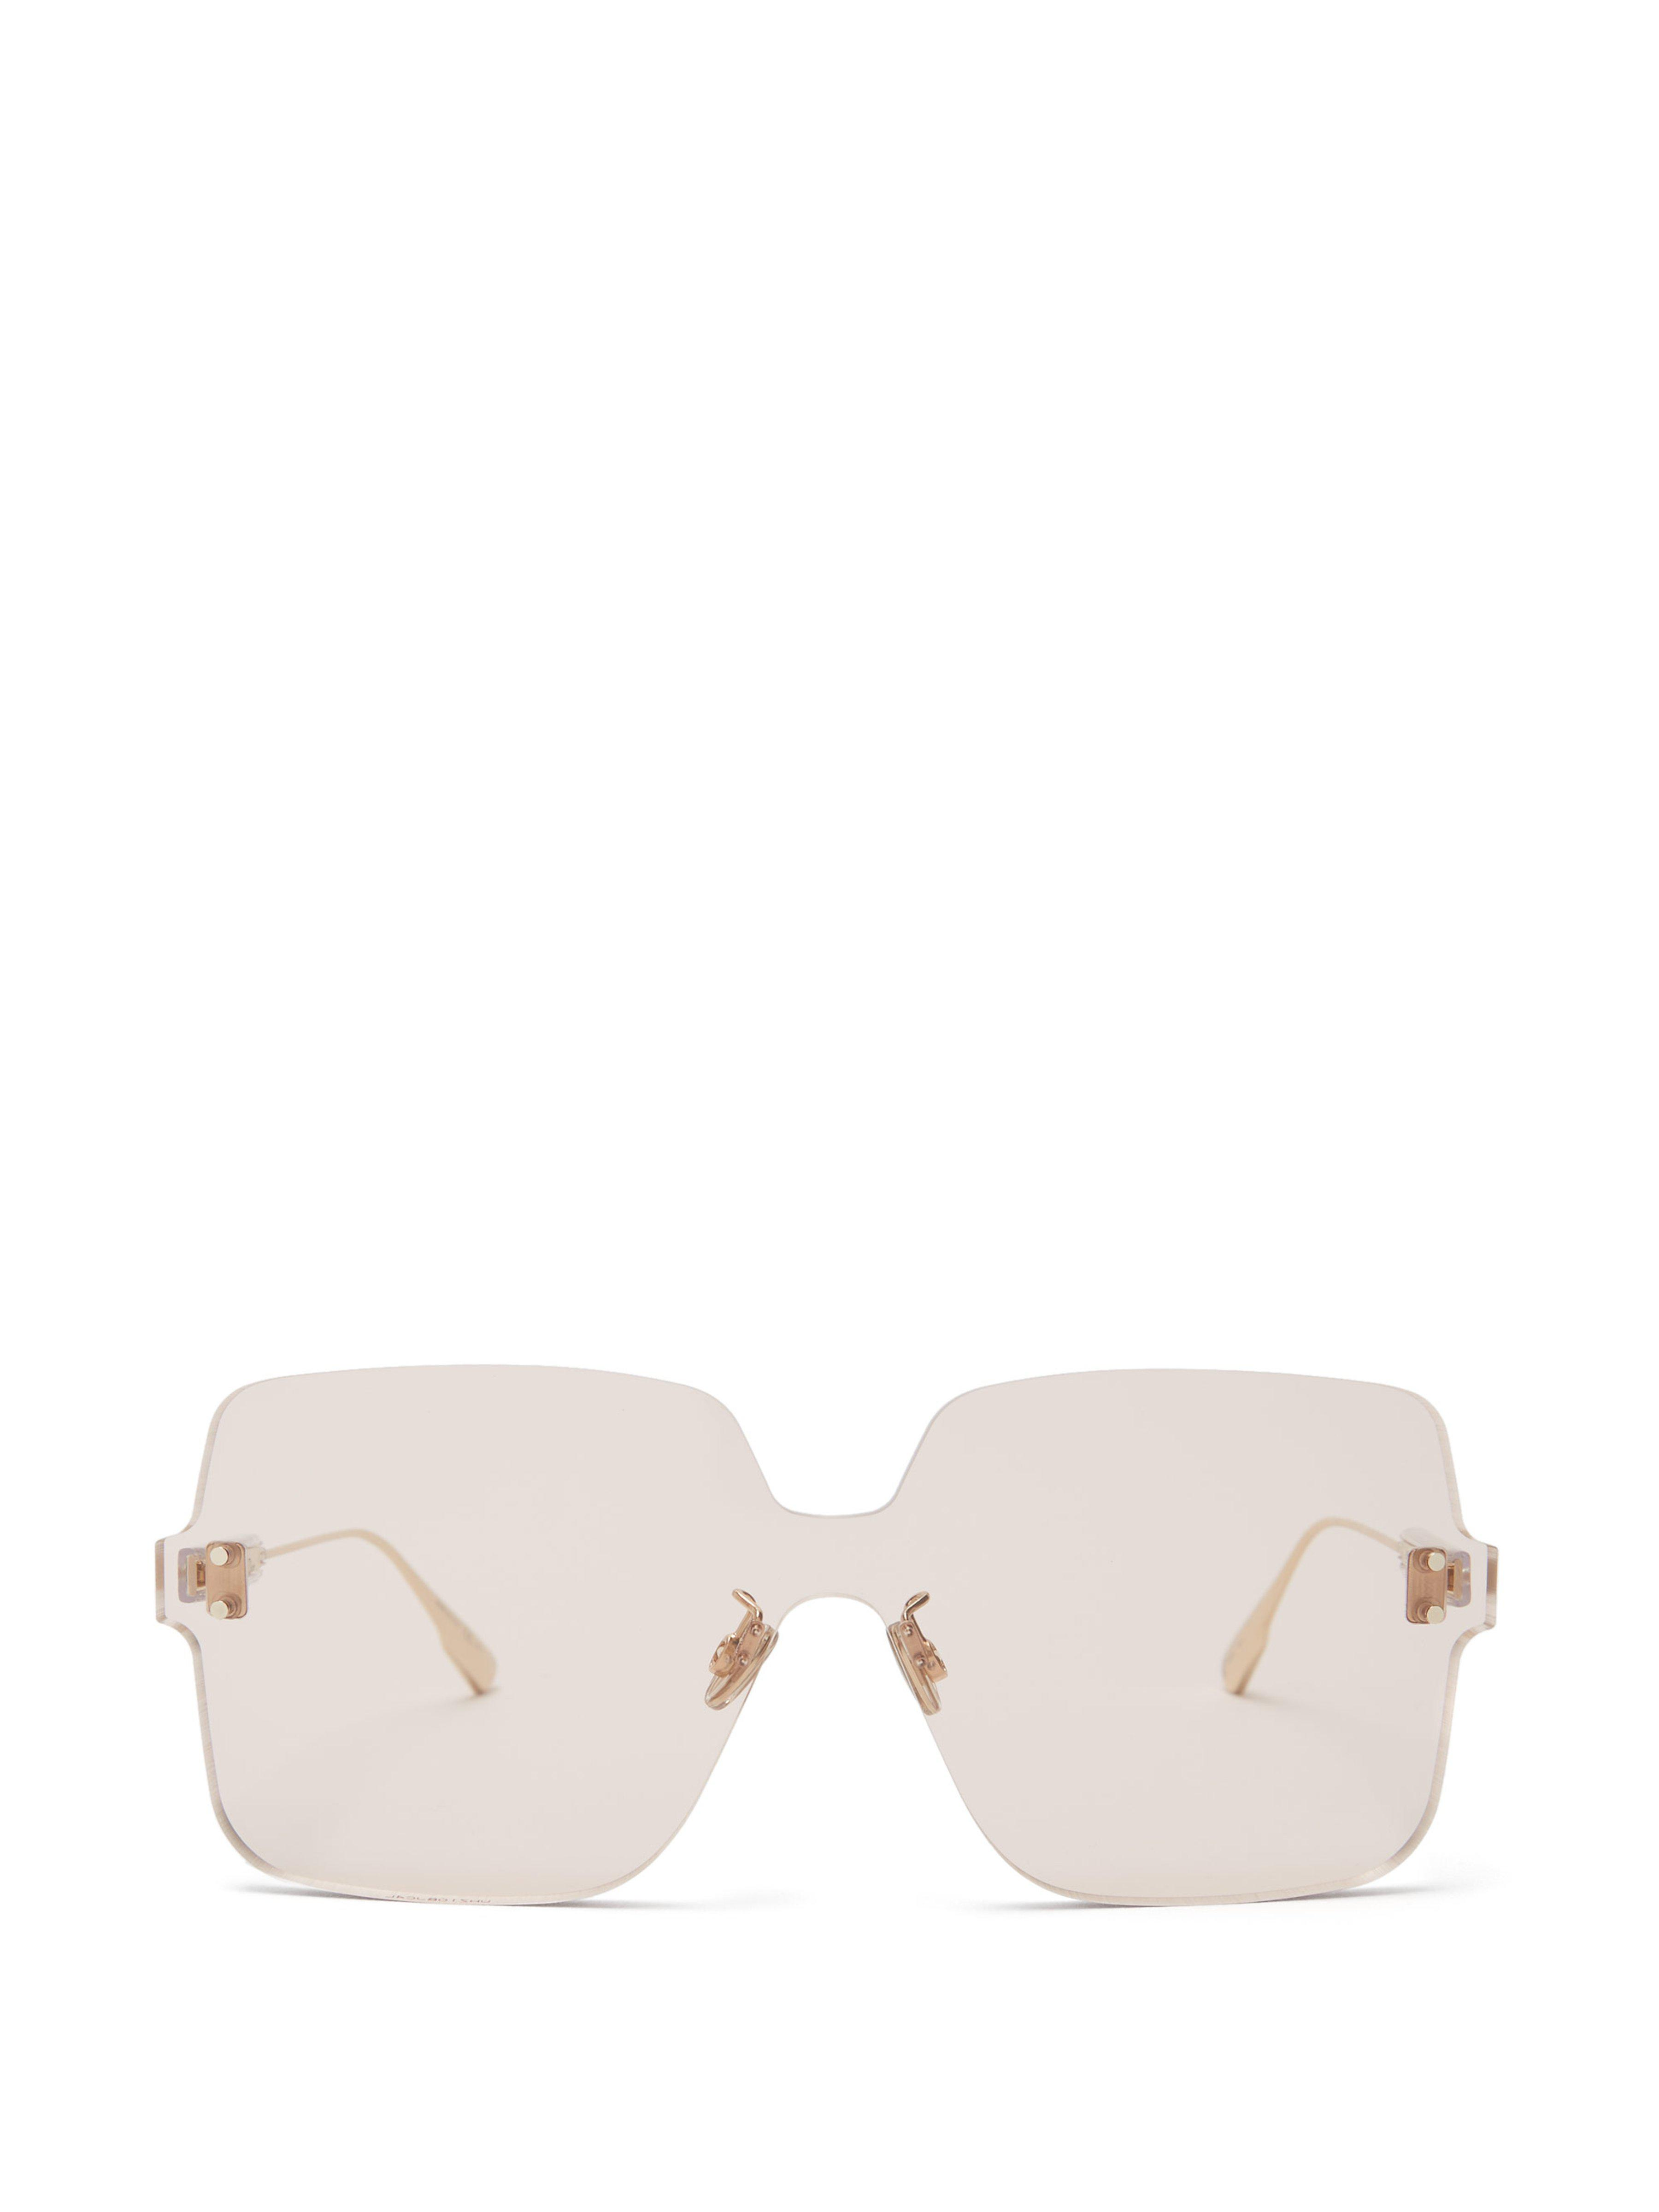 2ed095deead Dior Colourquake1 Sunglasses in Brown - Lyst